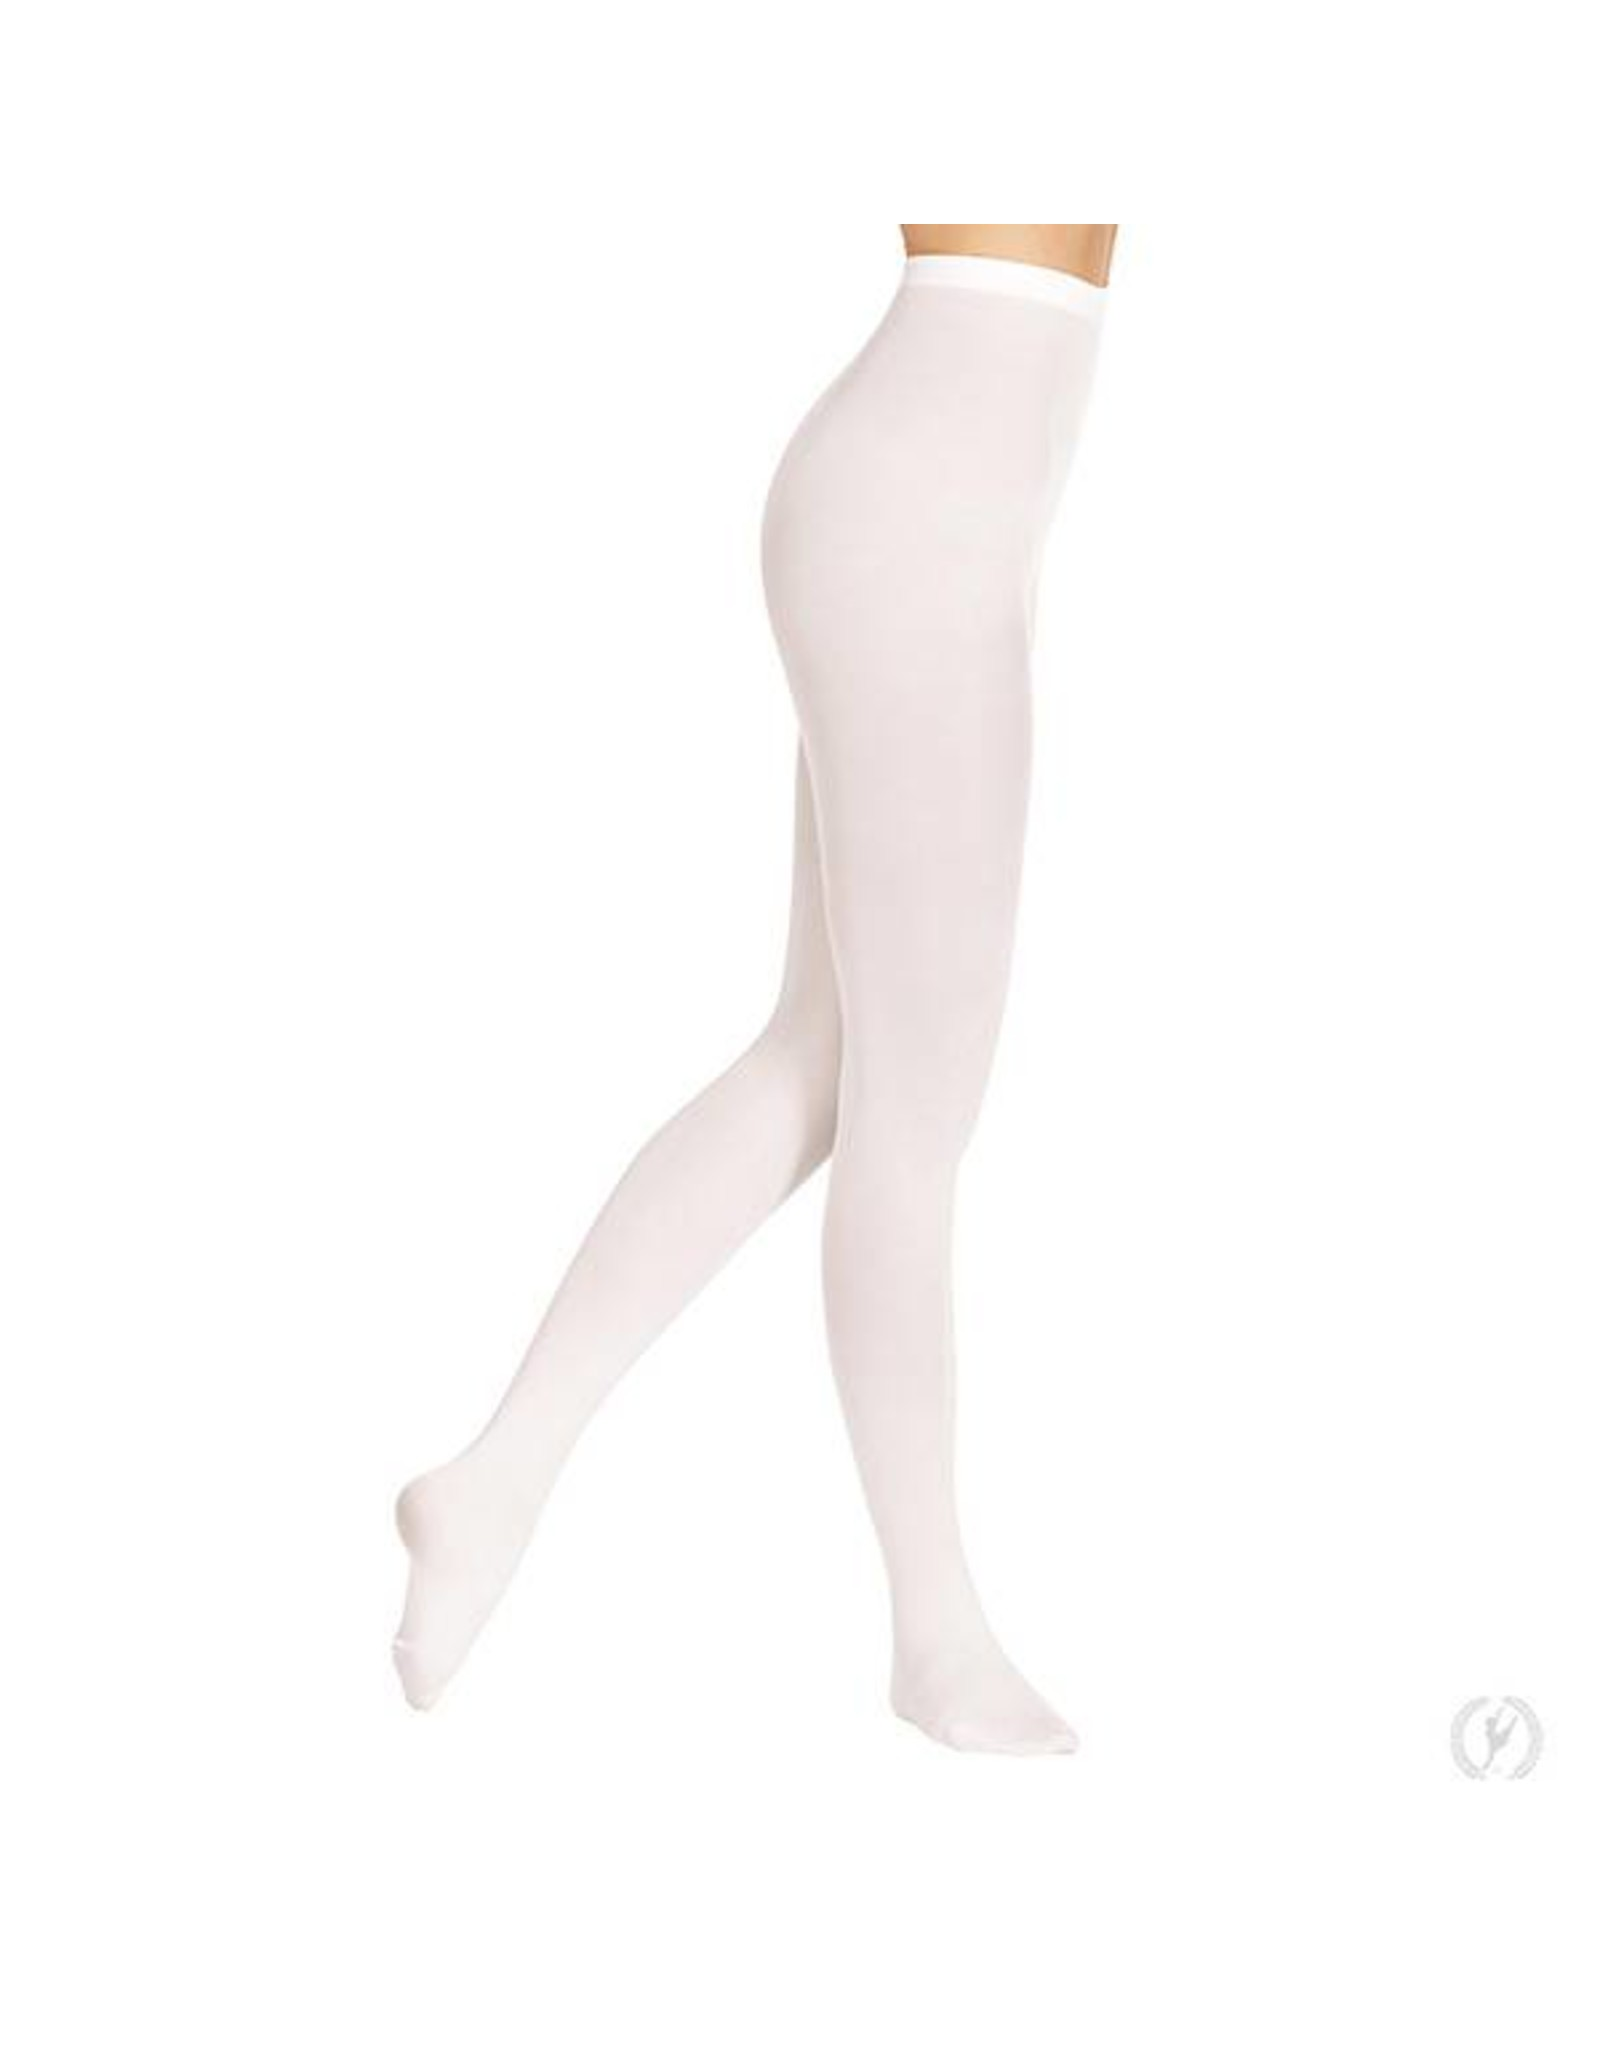 215 NR FOOTED TIGHTS WHITE